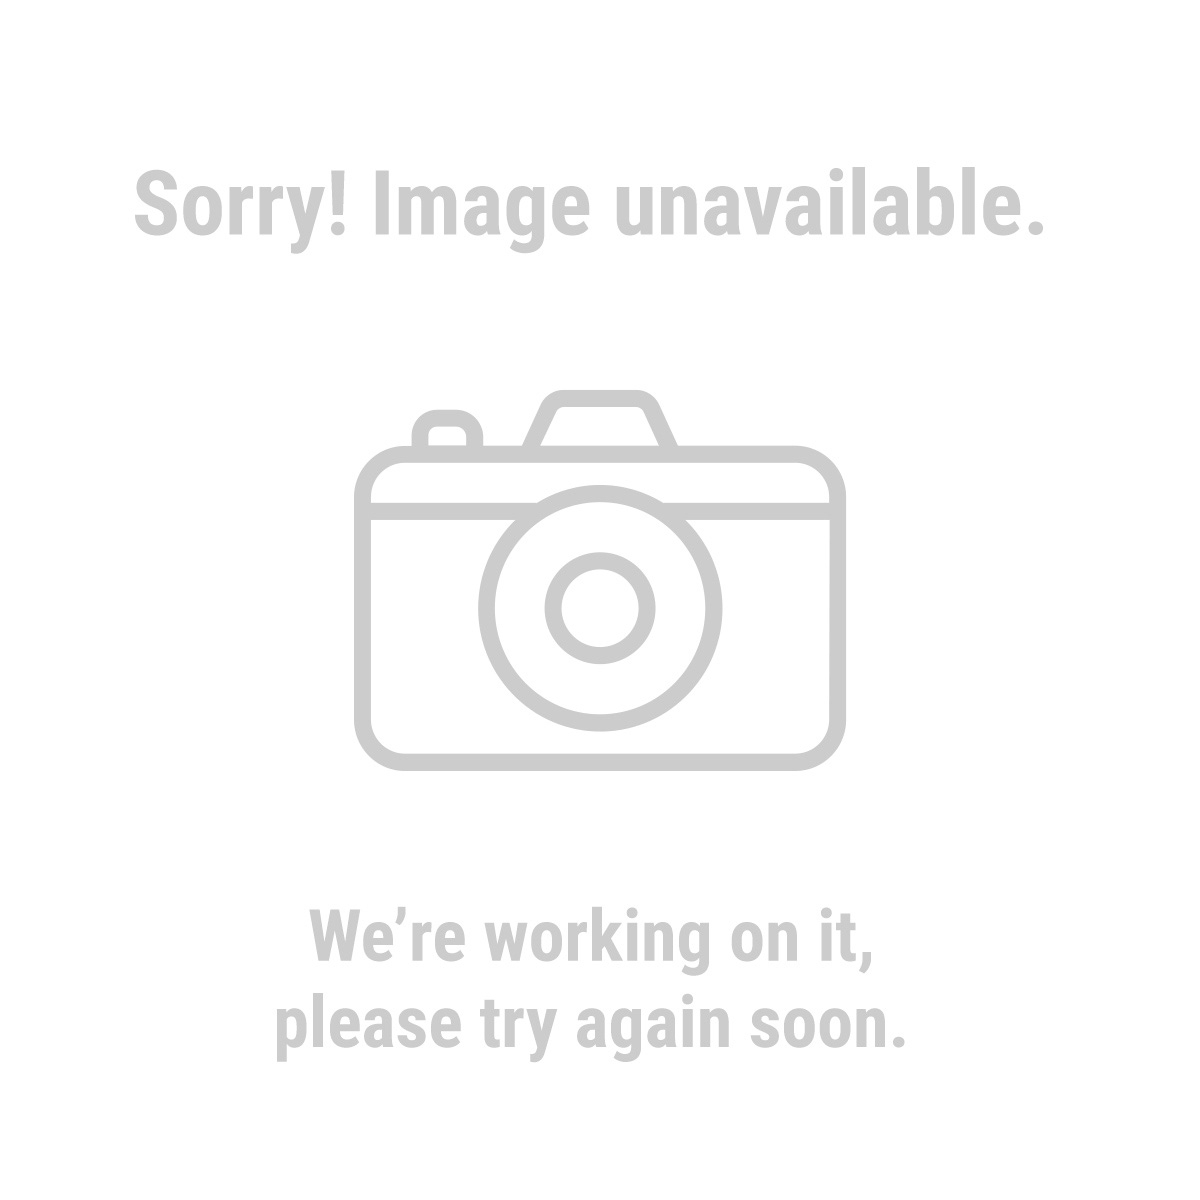 "Predator Outdoor Power Equipment 60622 1.5 HP Gasoline Auger Powerhead with 4"" Bit"